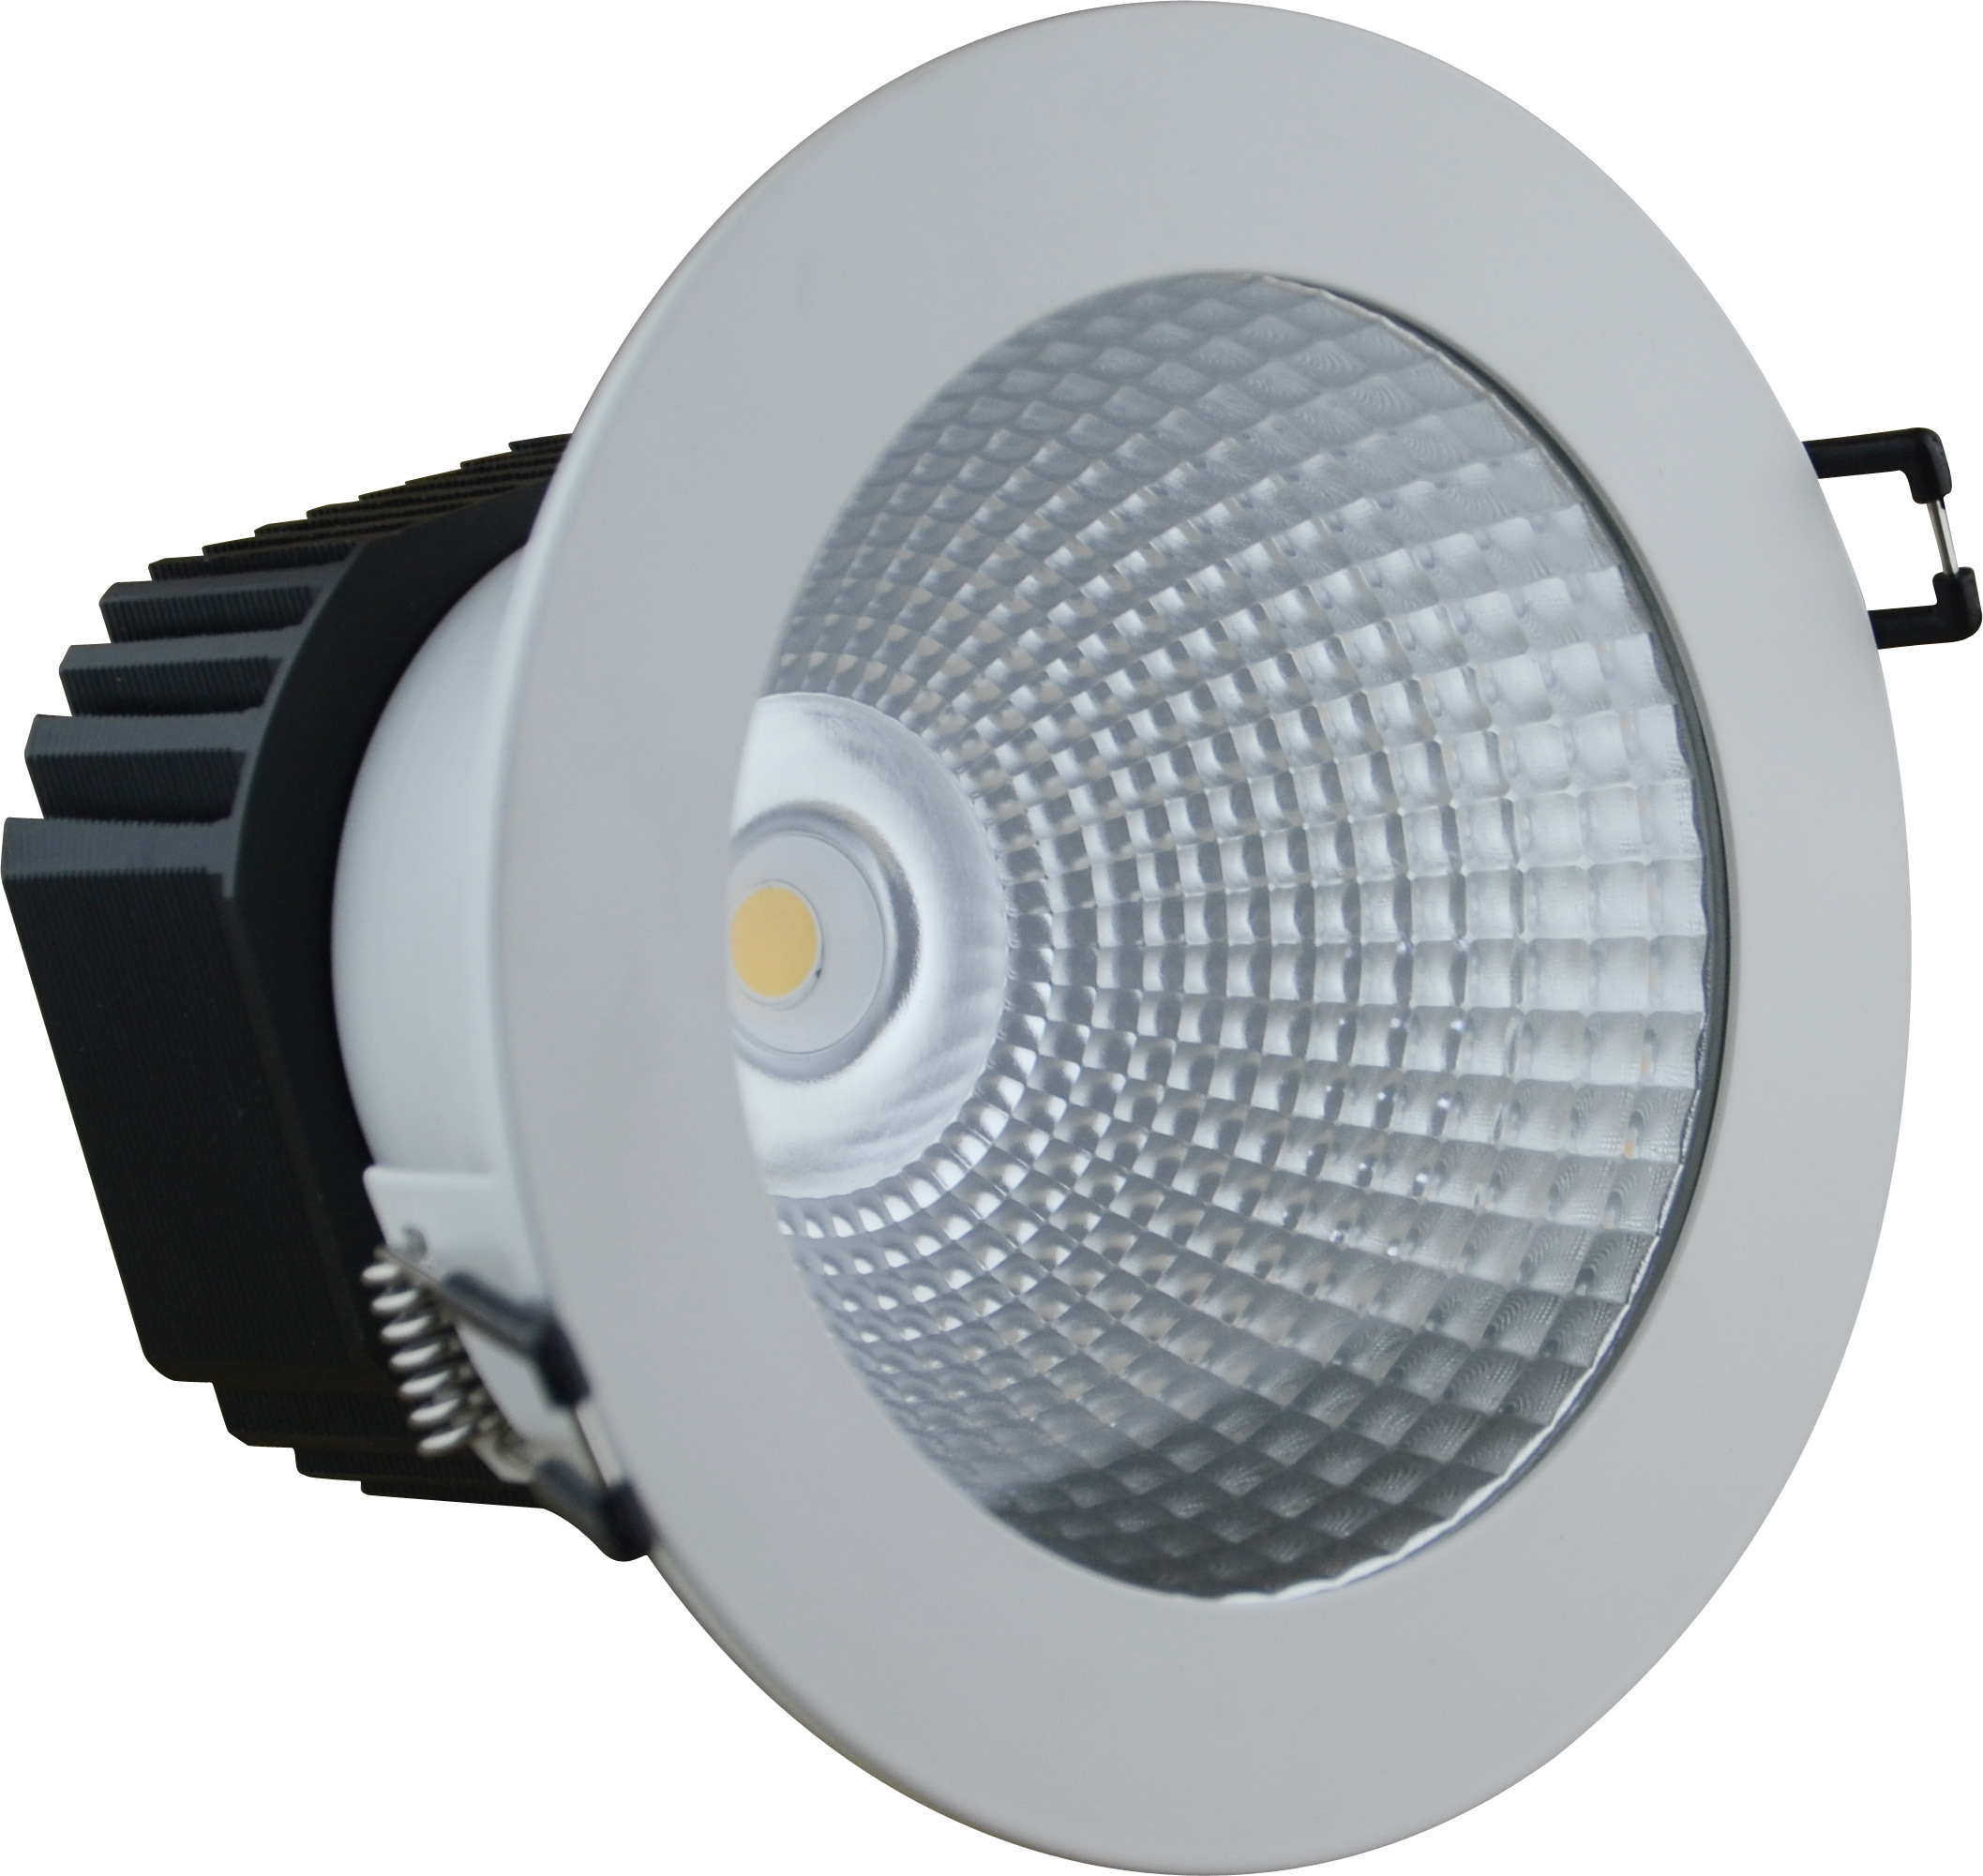 16W LED Downlight for for Interior/Commercial Lighting (LWZ350)